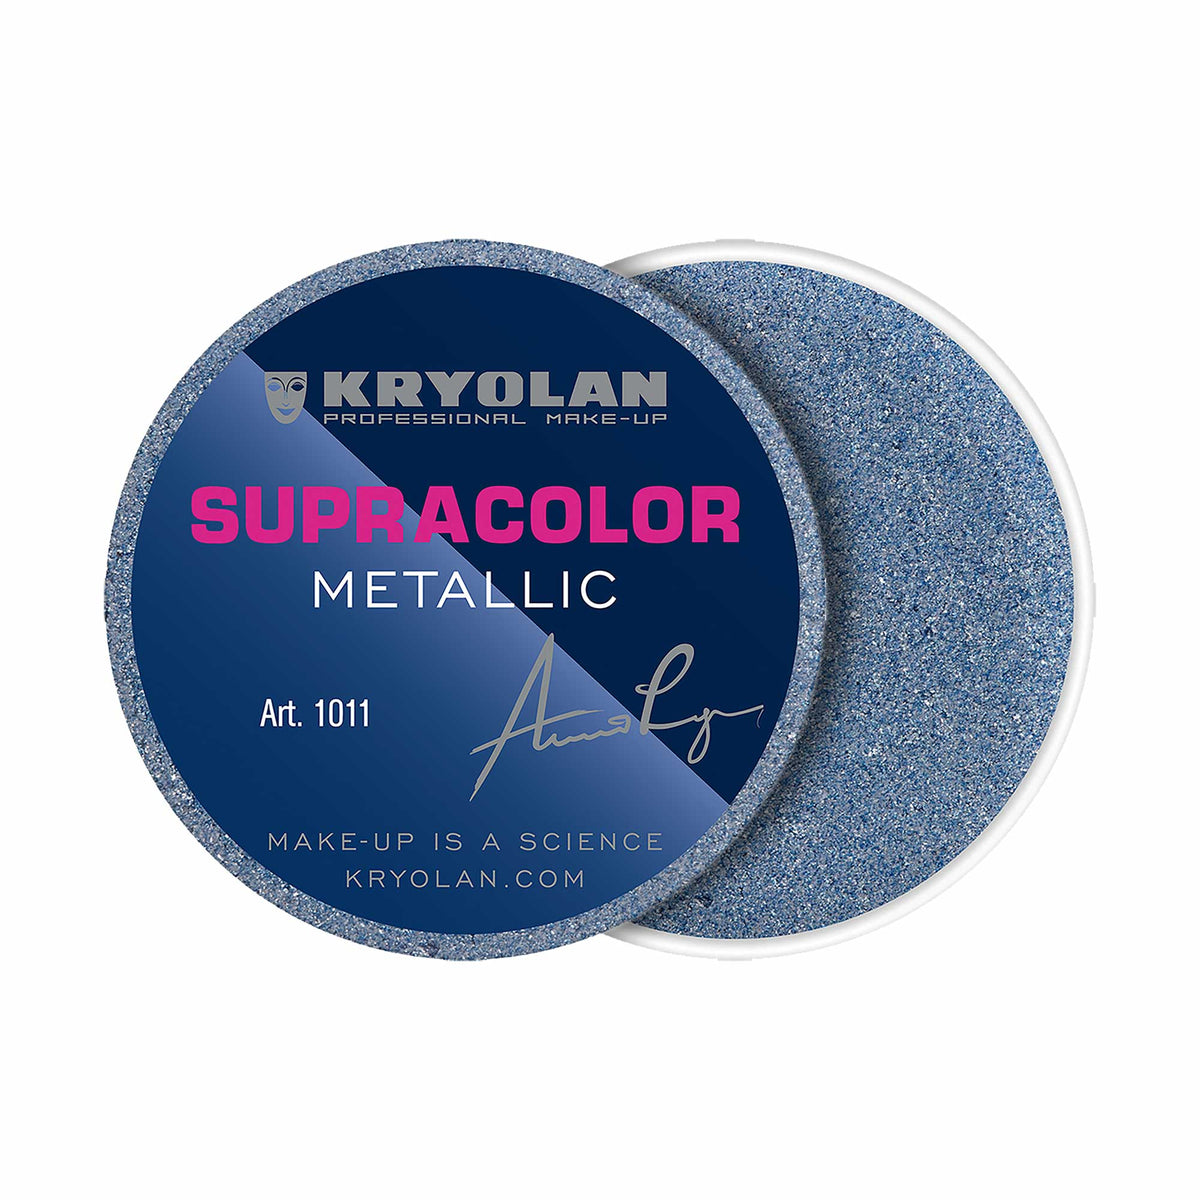 Kryolan SUPRACOLOR Metallic - Face & Body Grease Paint